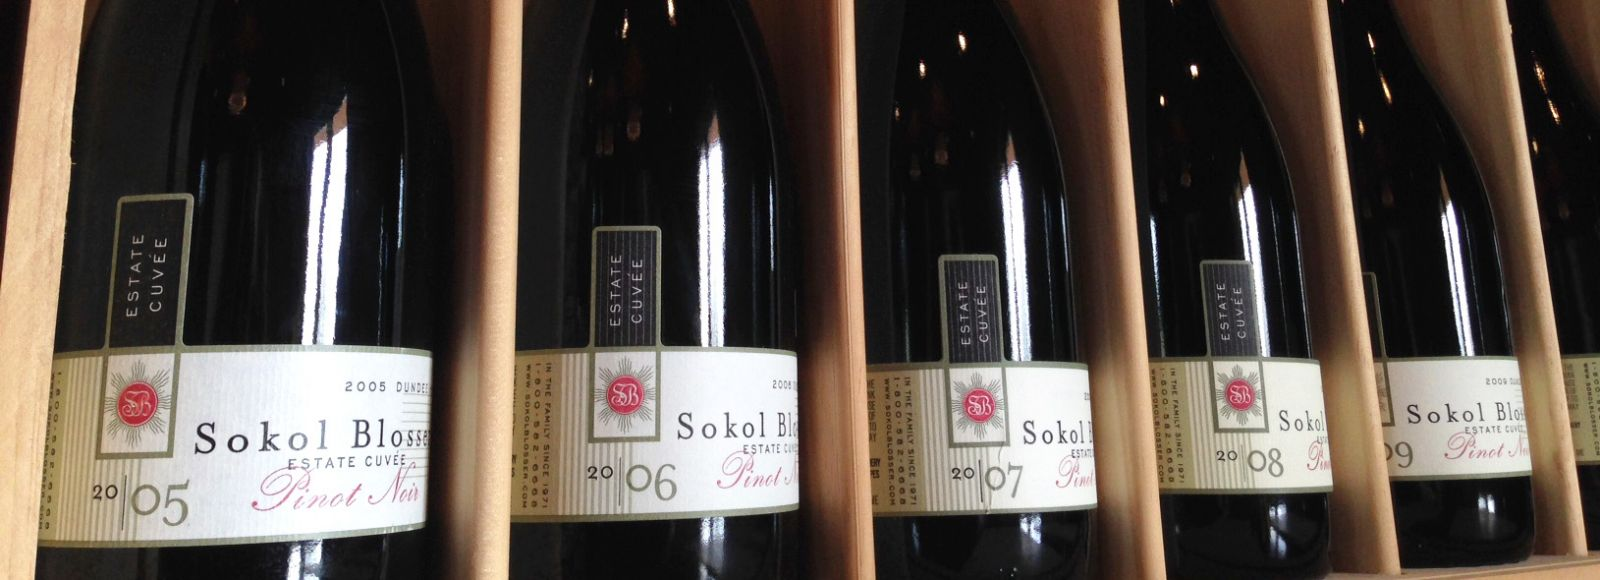 Five bottles of Sokol Blosser wine